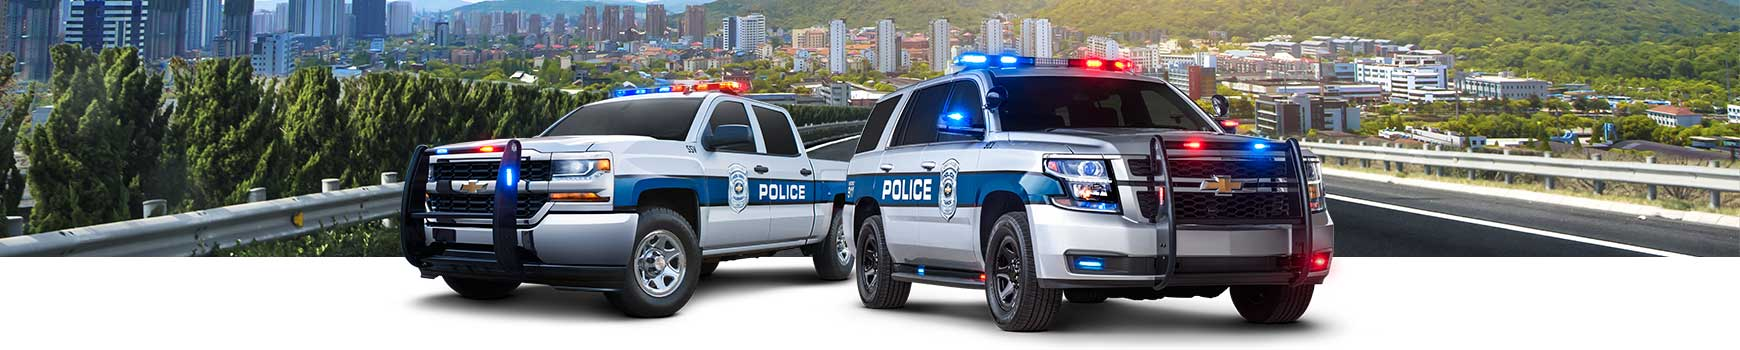 The Chevrolet Silverado Crew Cab Special Service Vehicle and Chevrolet Tahoe Police Pursuit Vehicle.